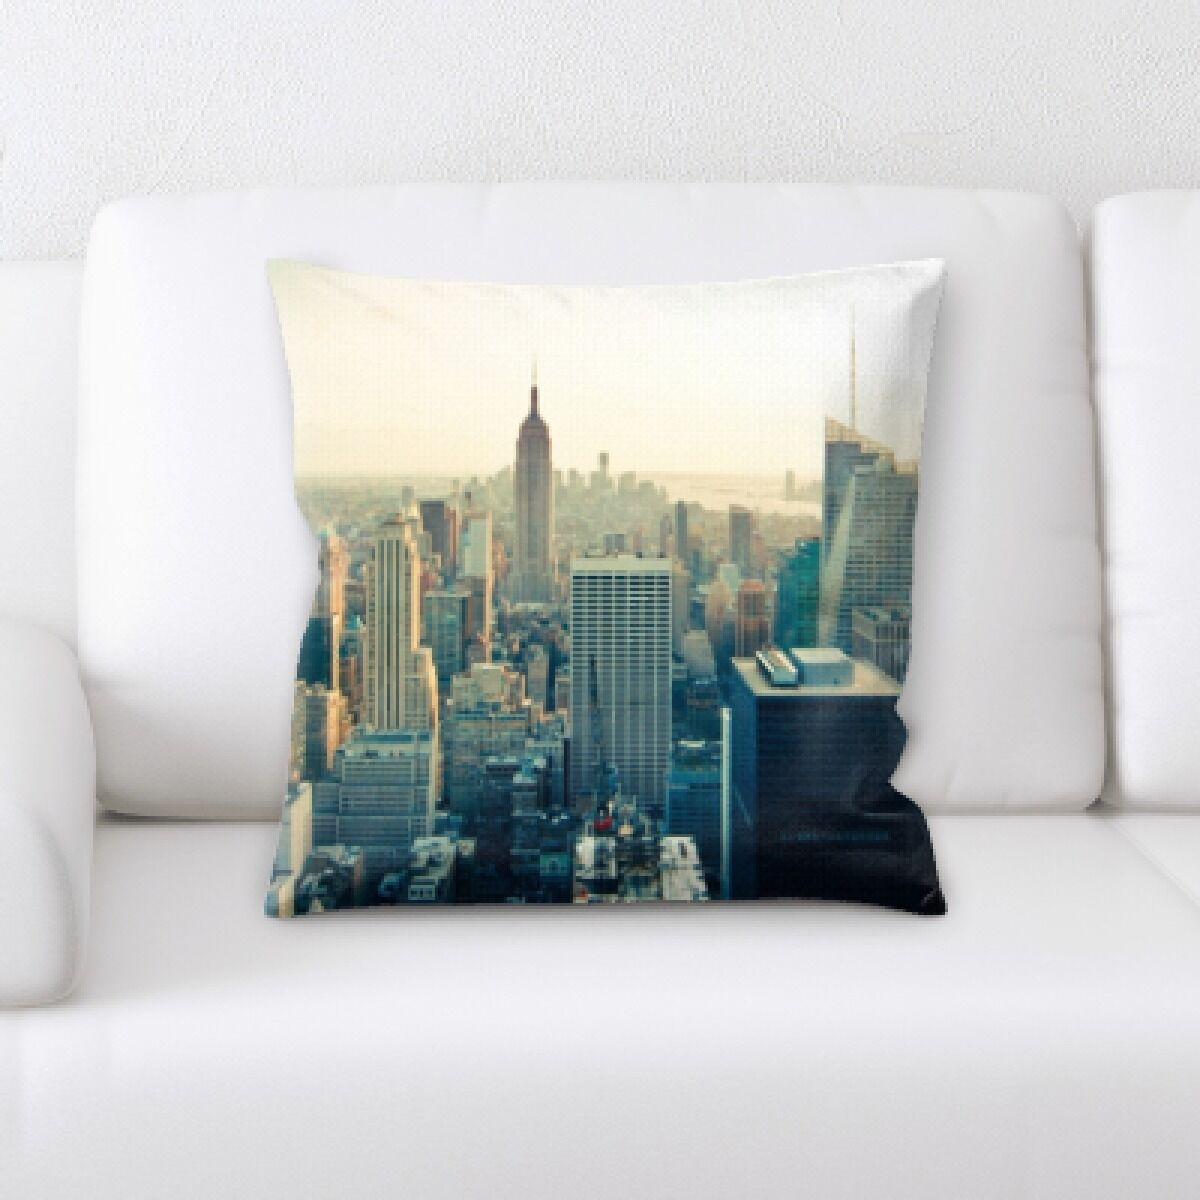 Gabilan New York City Shots (82) Throw Pillow